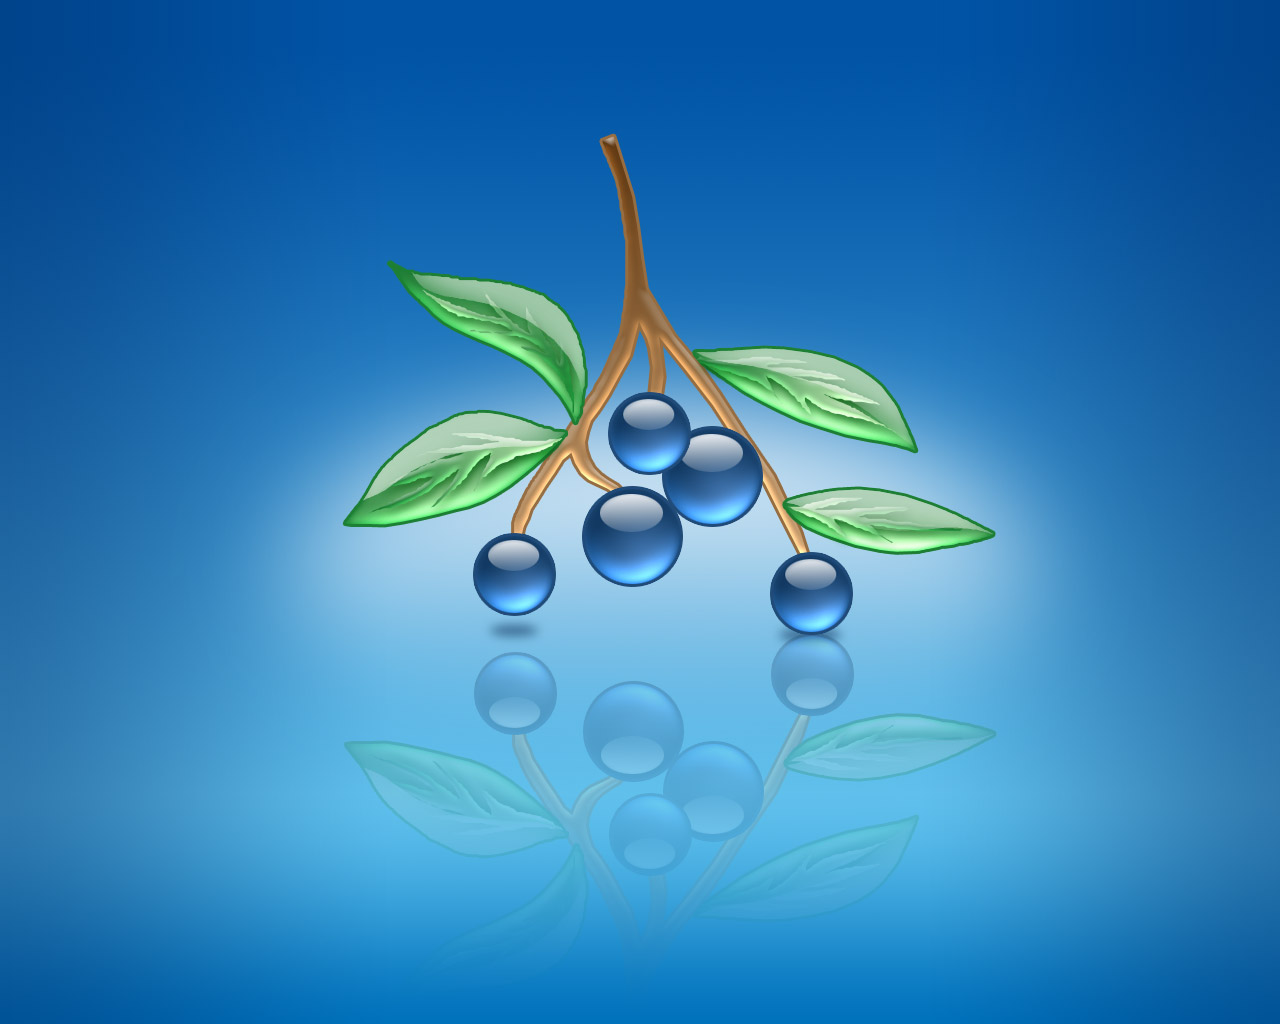 Strictly Wallpaper: Aqua Wallpapers - Blueberries